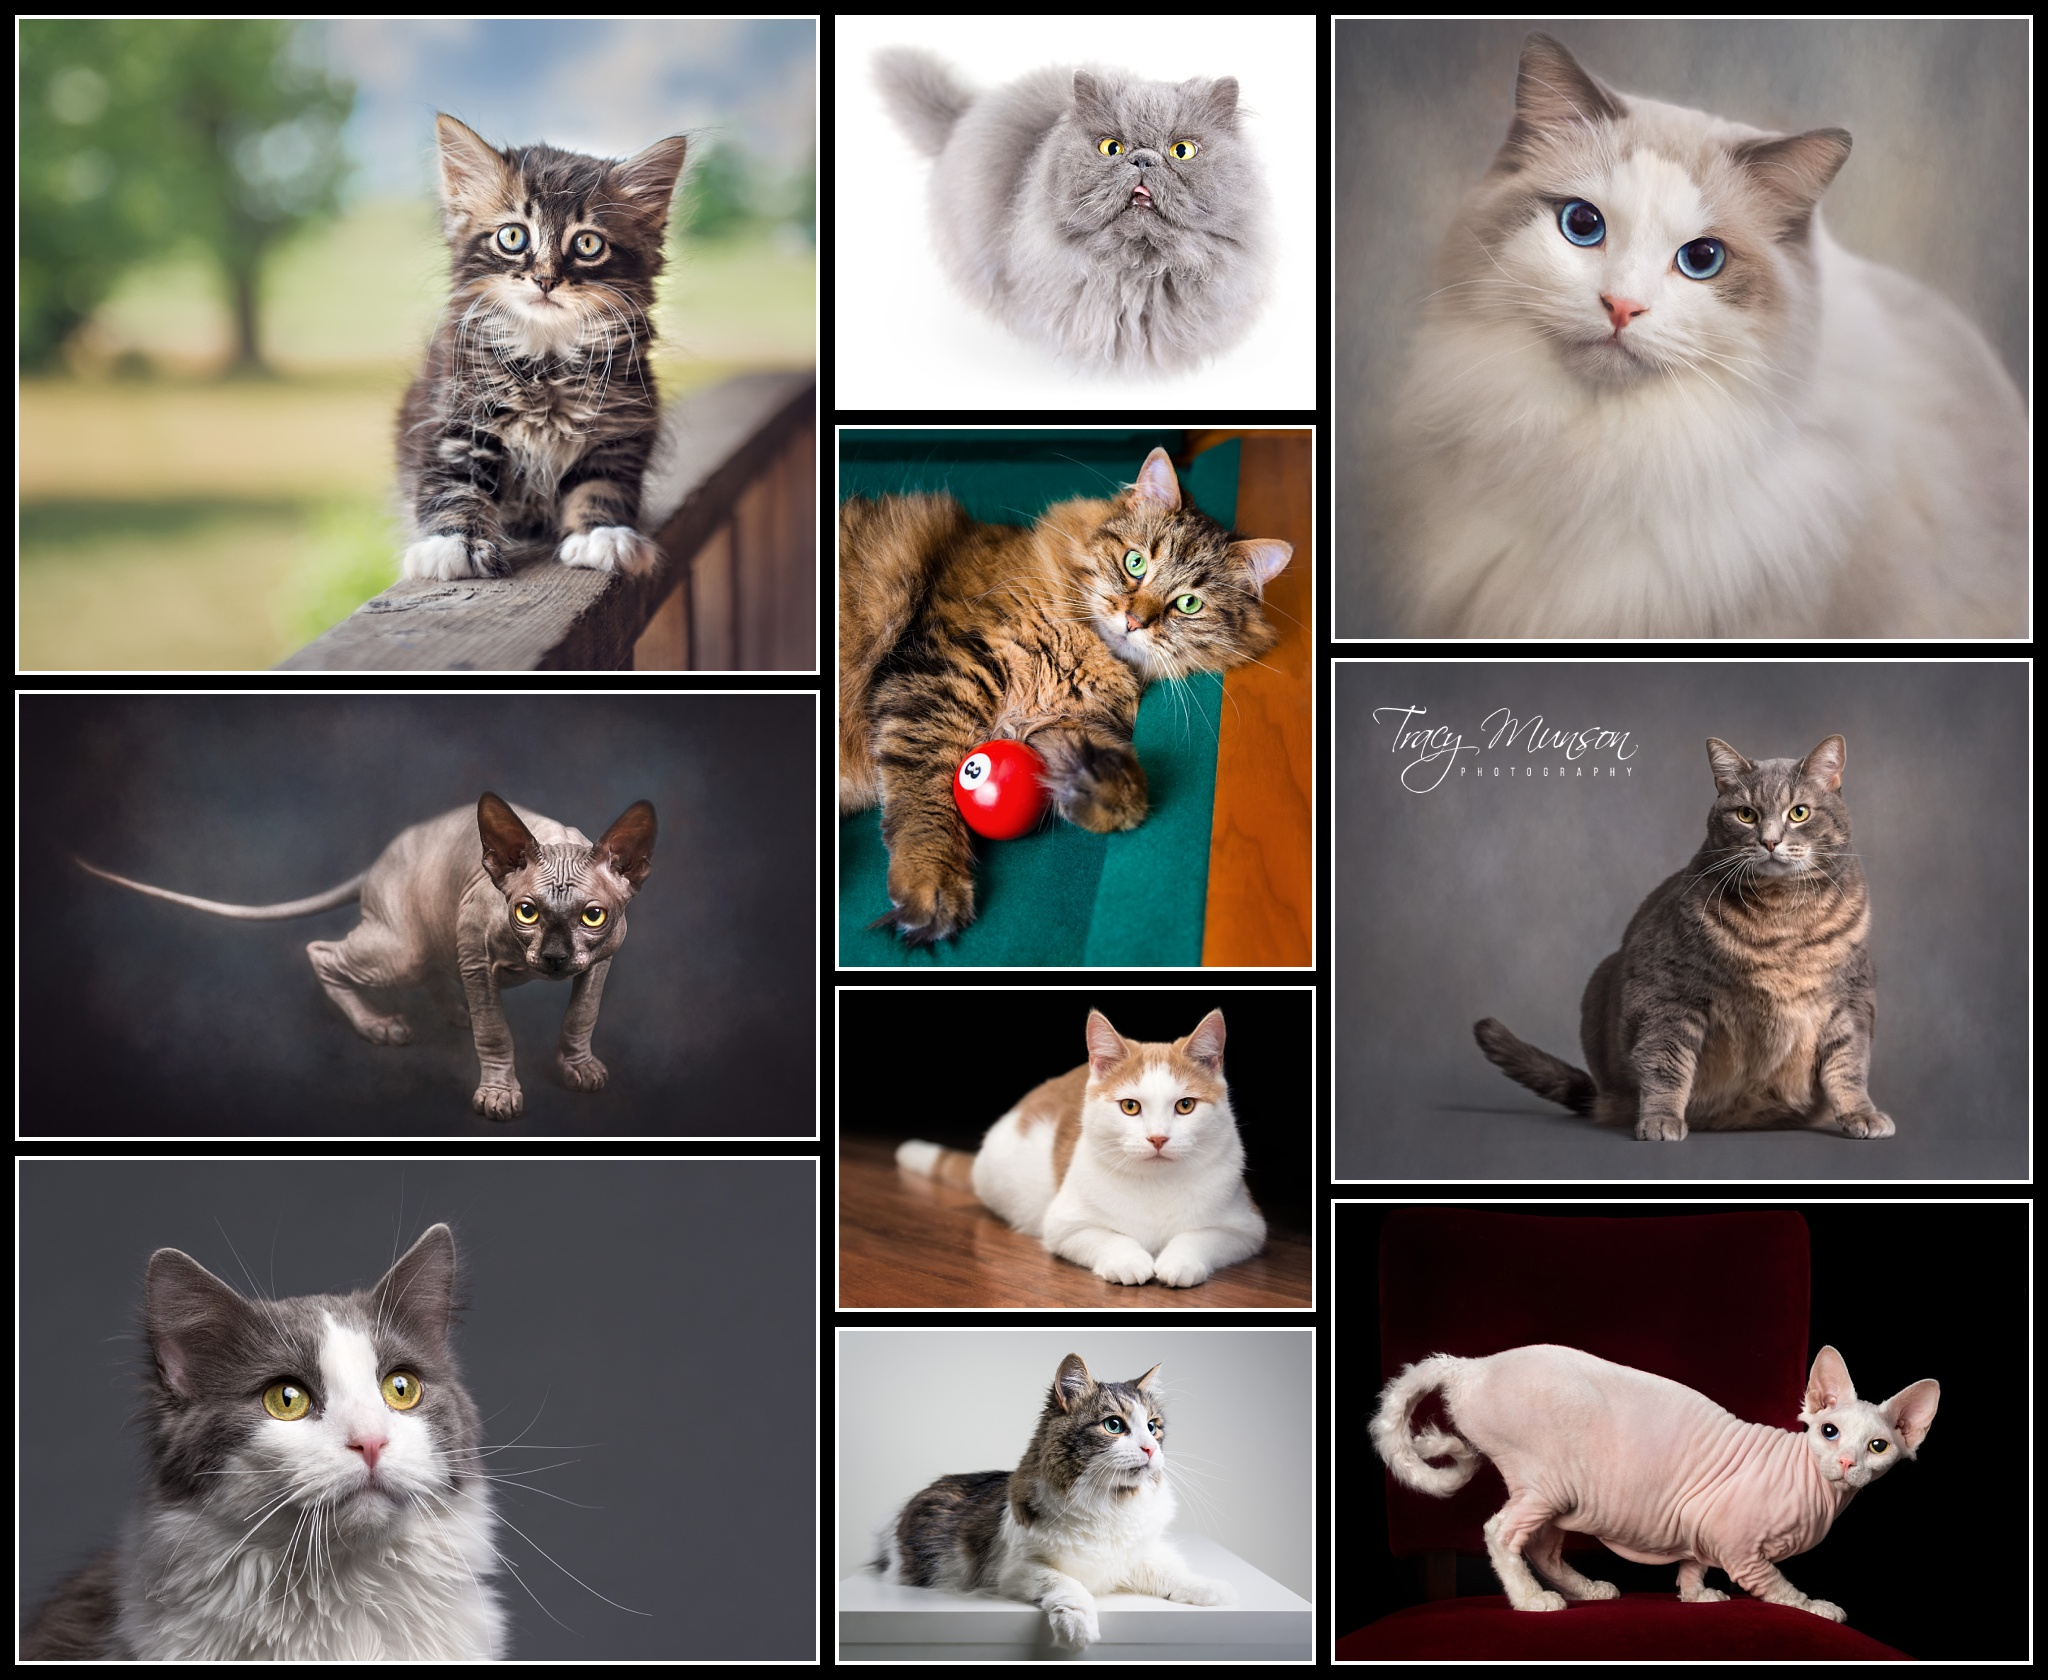 My successful Feline Portraiture Accreditation Submission.